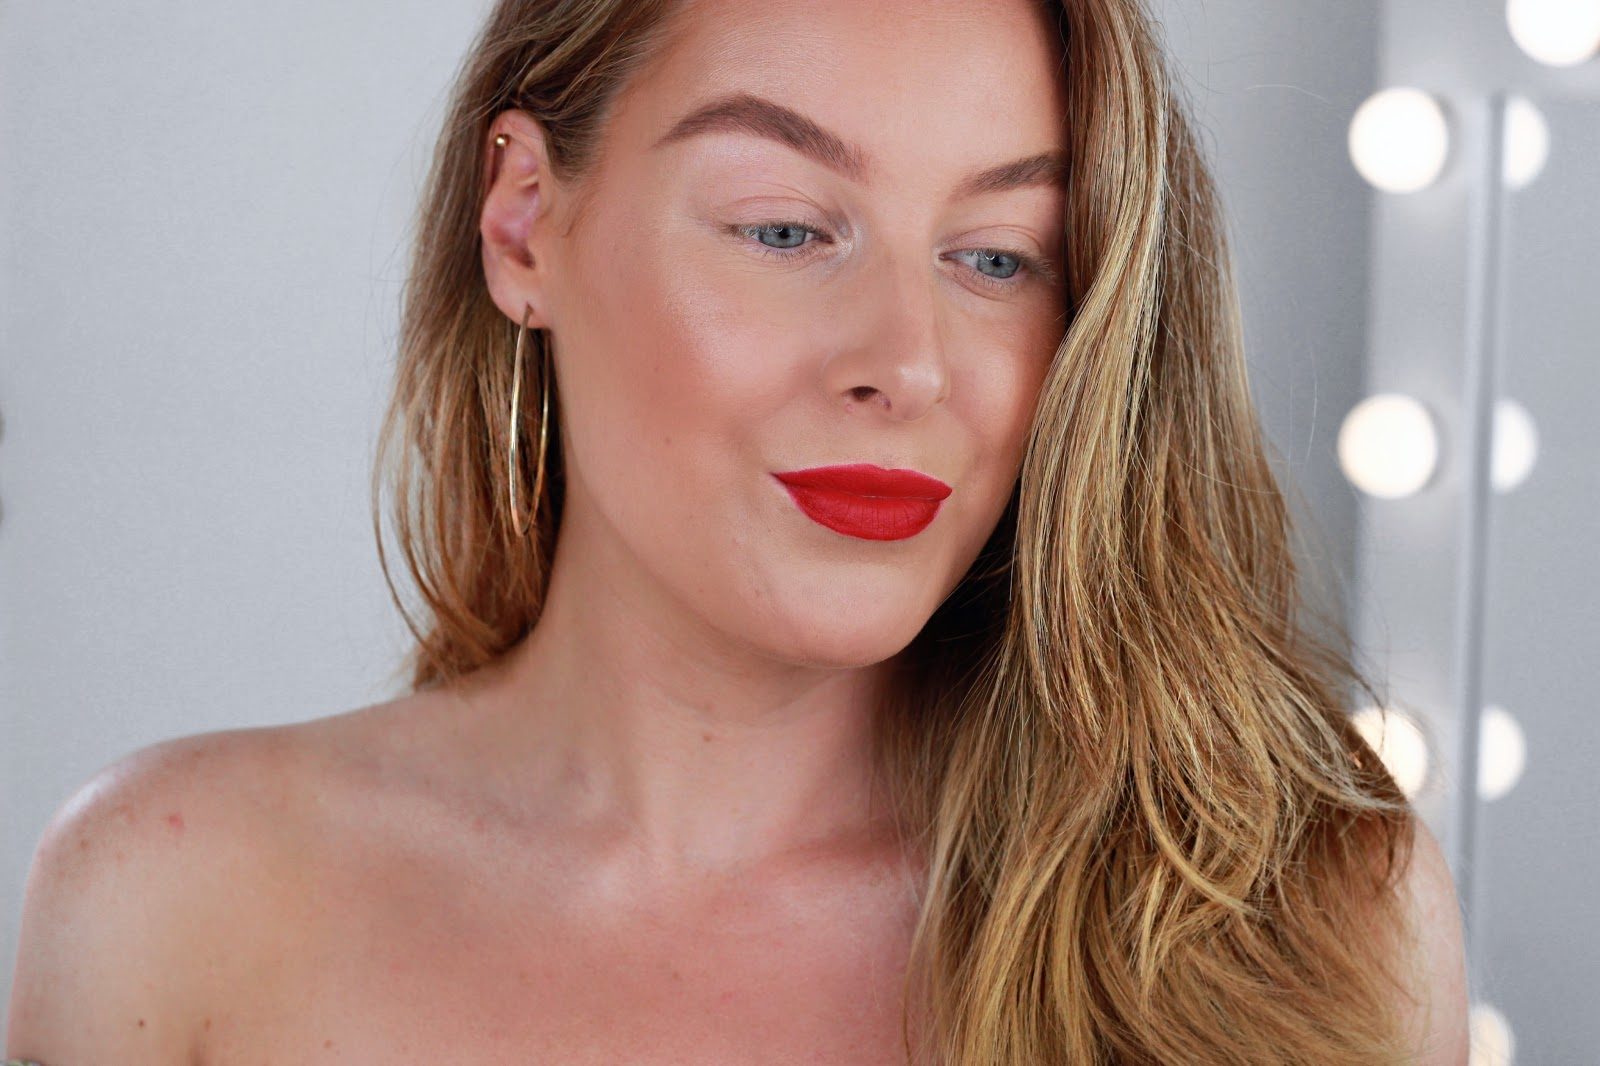 Dewy skin and red lips makeup tutorial